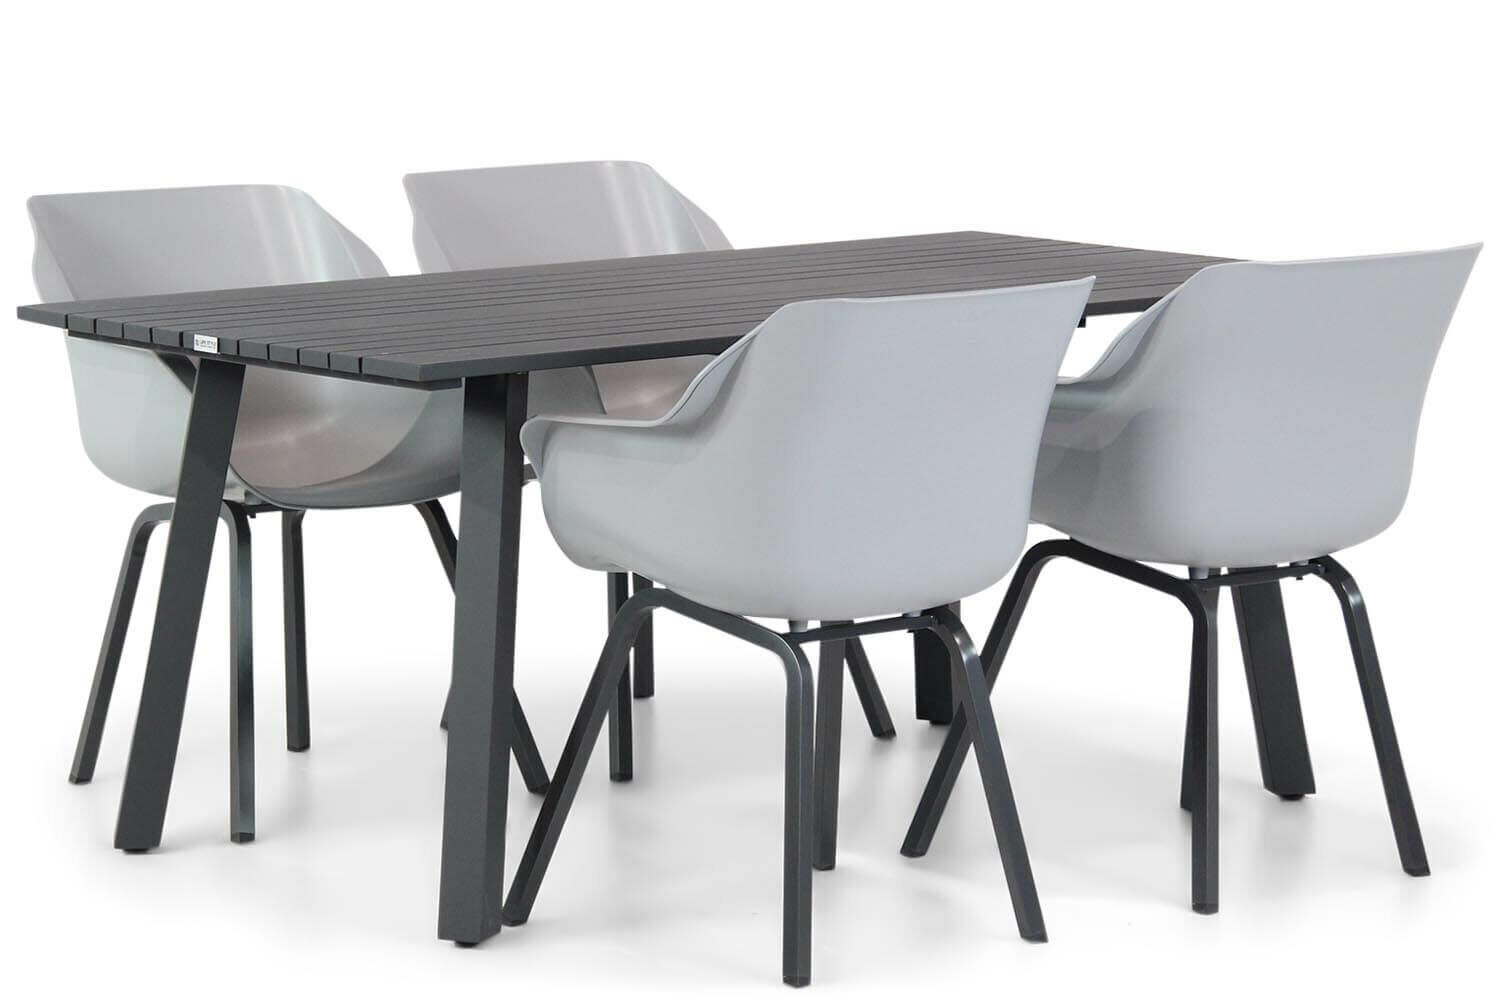 Hartman Sophie element/Villagio 170 cm dining tuinset 5-delig